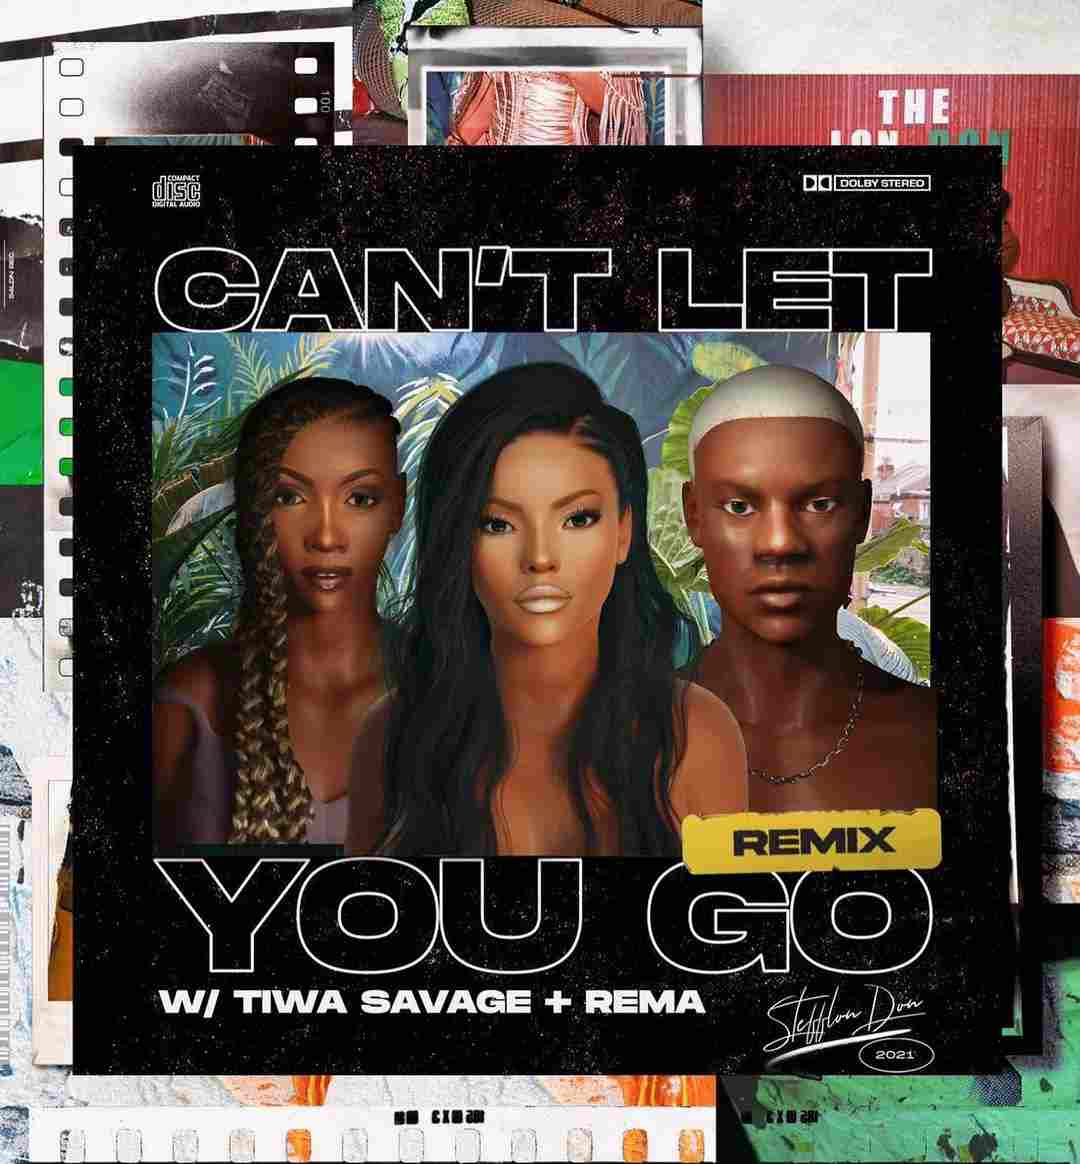 Burna Boy's girlfriend Stefflon Don features Rema, Tiwa Savage on new single can't let go remix